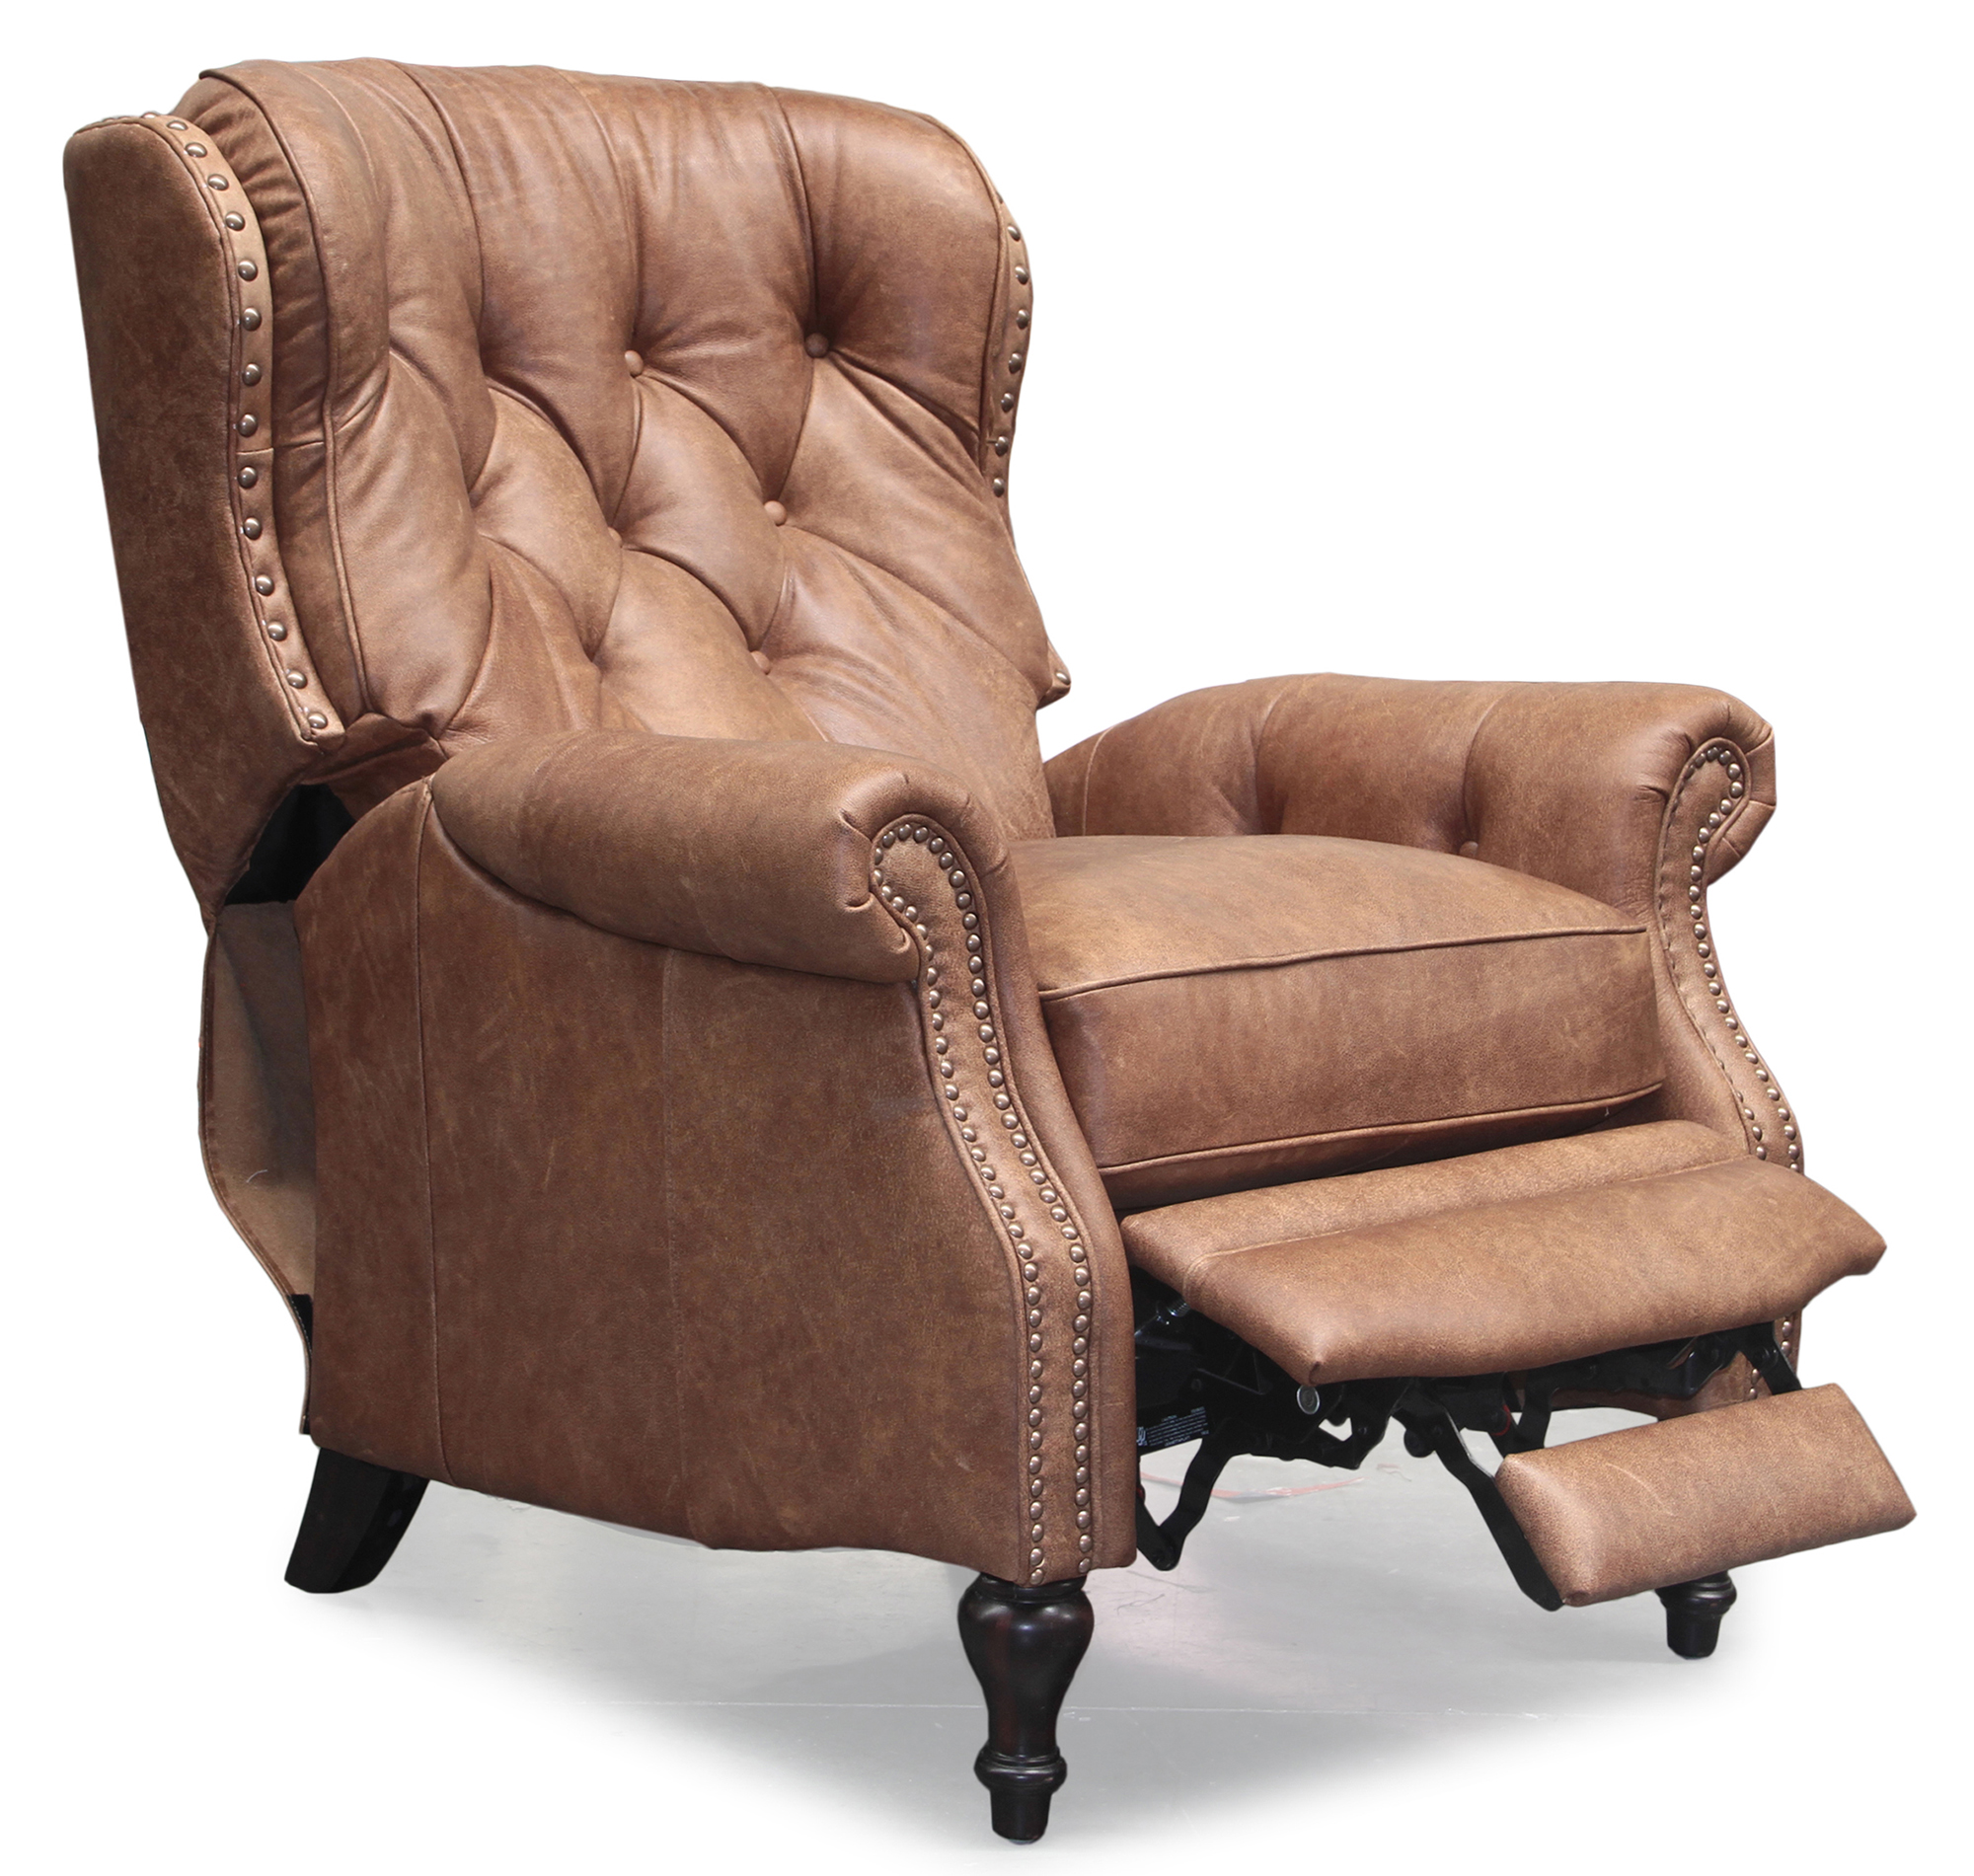 Barcalounger Kendall II Recliner Chair - Leather Recliner Chair ...